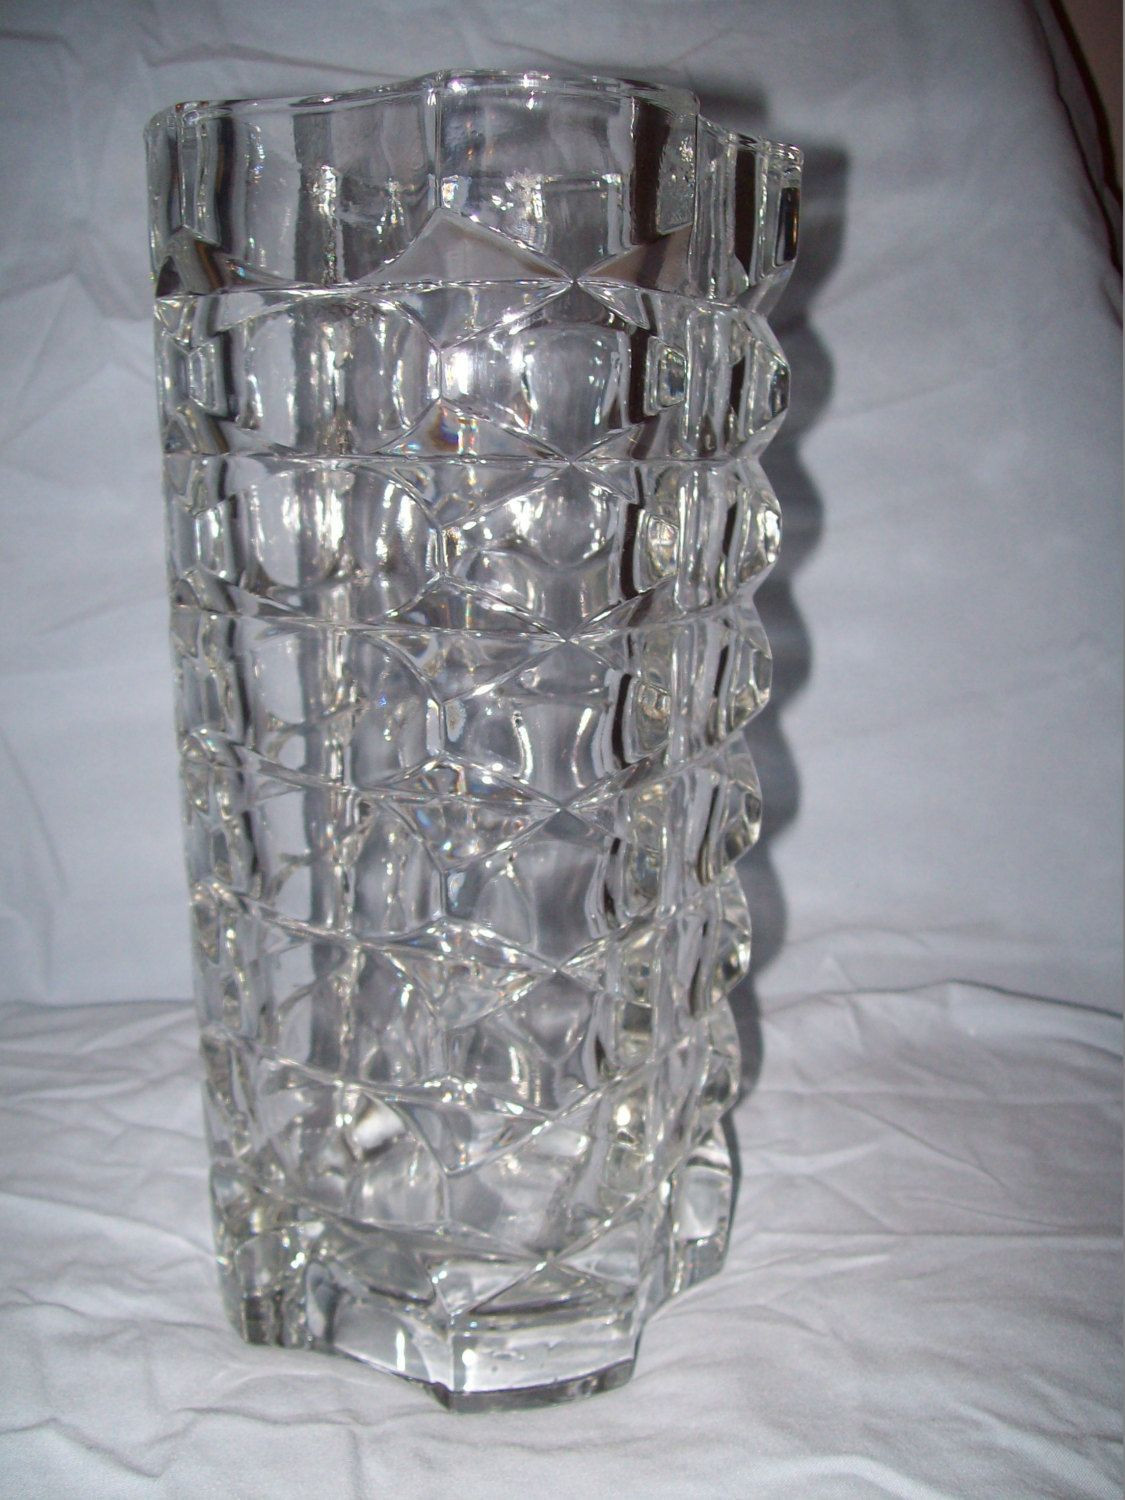 Heavy Blue Glass Vase Of Extra Large Glass Vase Gallery Clear Glass Very Old Large Vase Pertaining to Extra Large Glass Vase Gallery Clear Glass Very Old Large Vase Leaded Glass Very Heavy 66